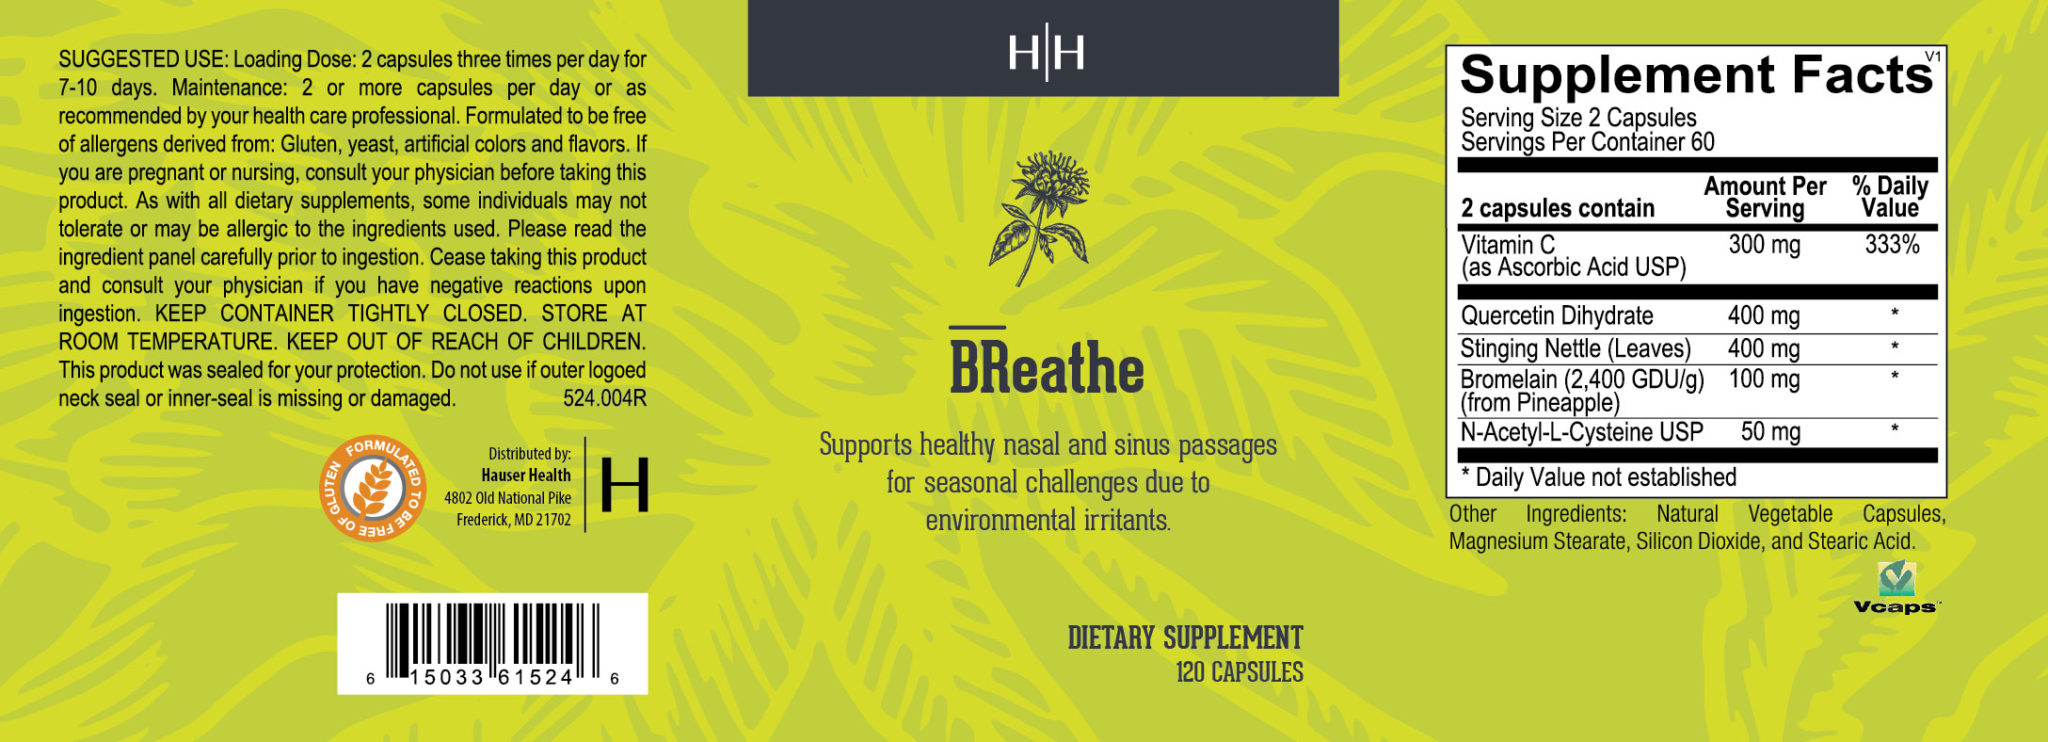 BReathe holistic allergy supplement